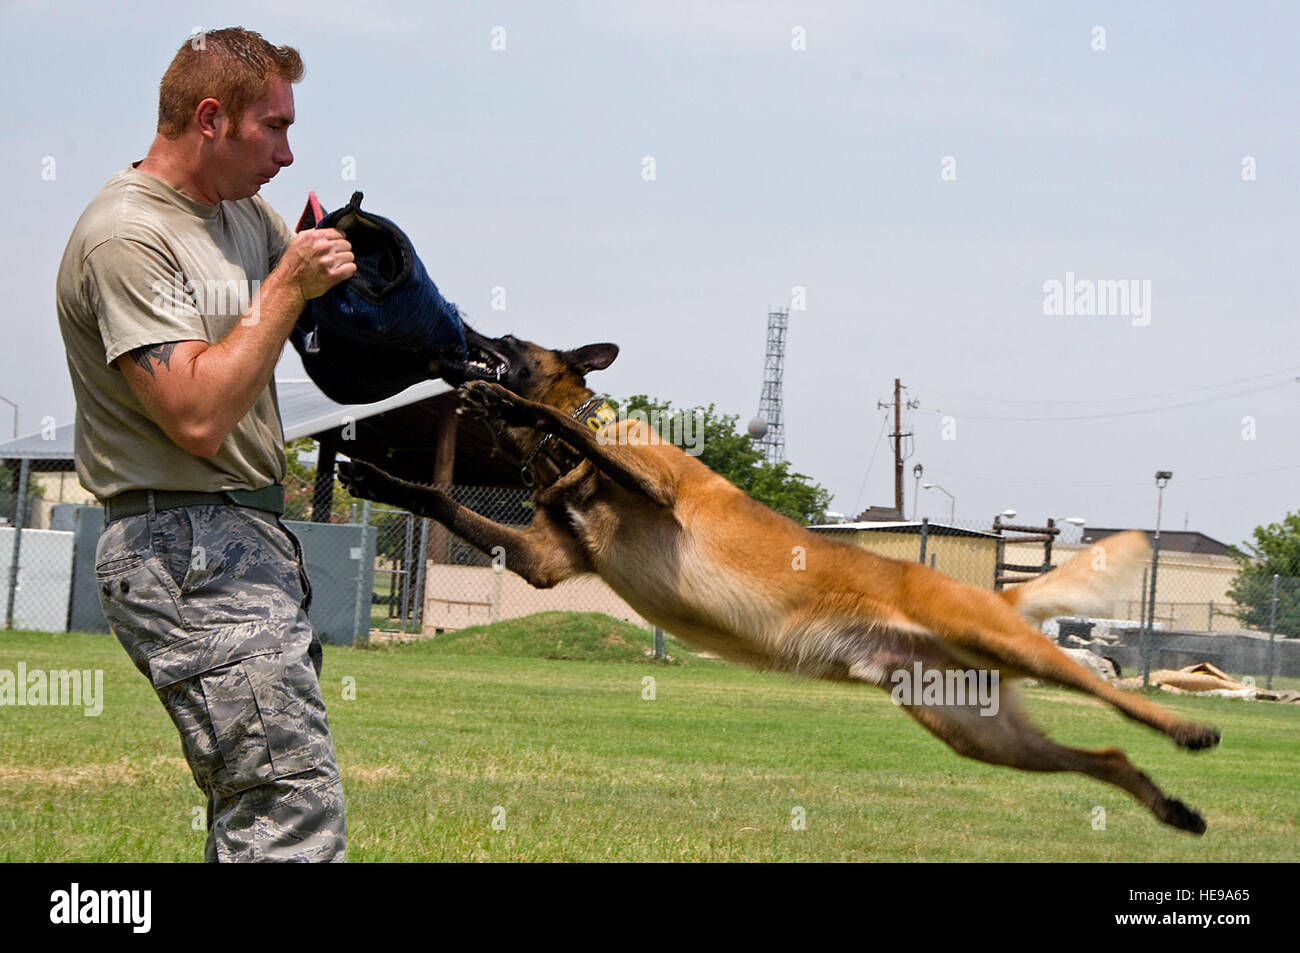 Tech. Sgt. Shawn Rankins and military working dog Eespn demonstrate aggression training Aug. 4, 2015, at Sheppard - Stock Image